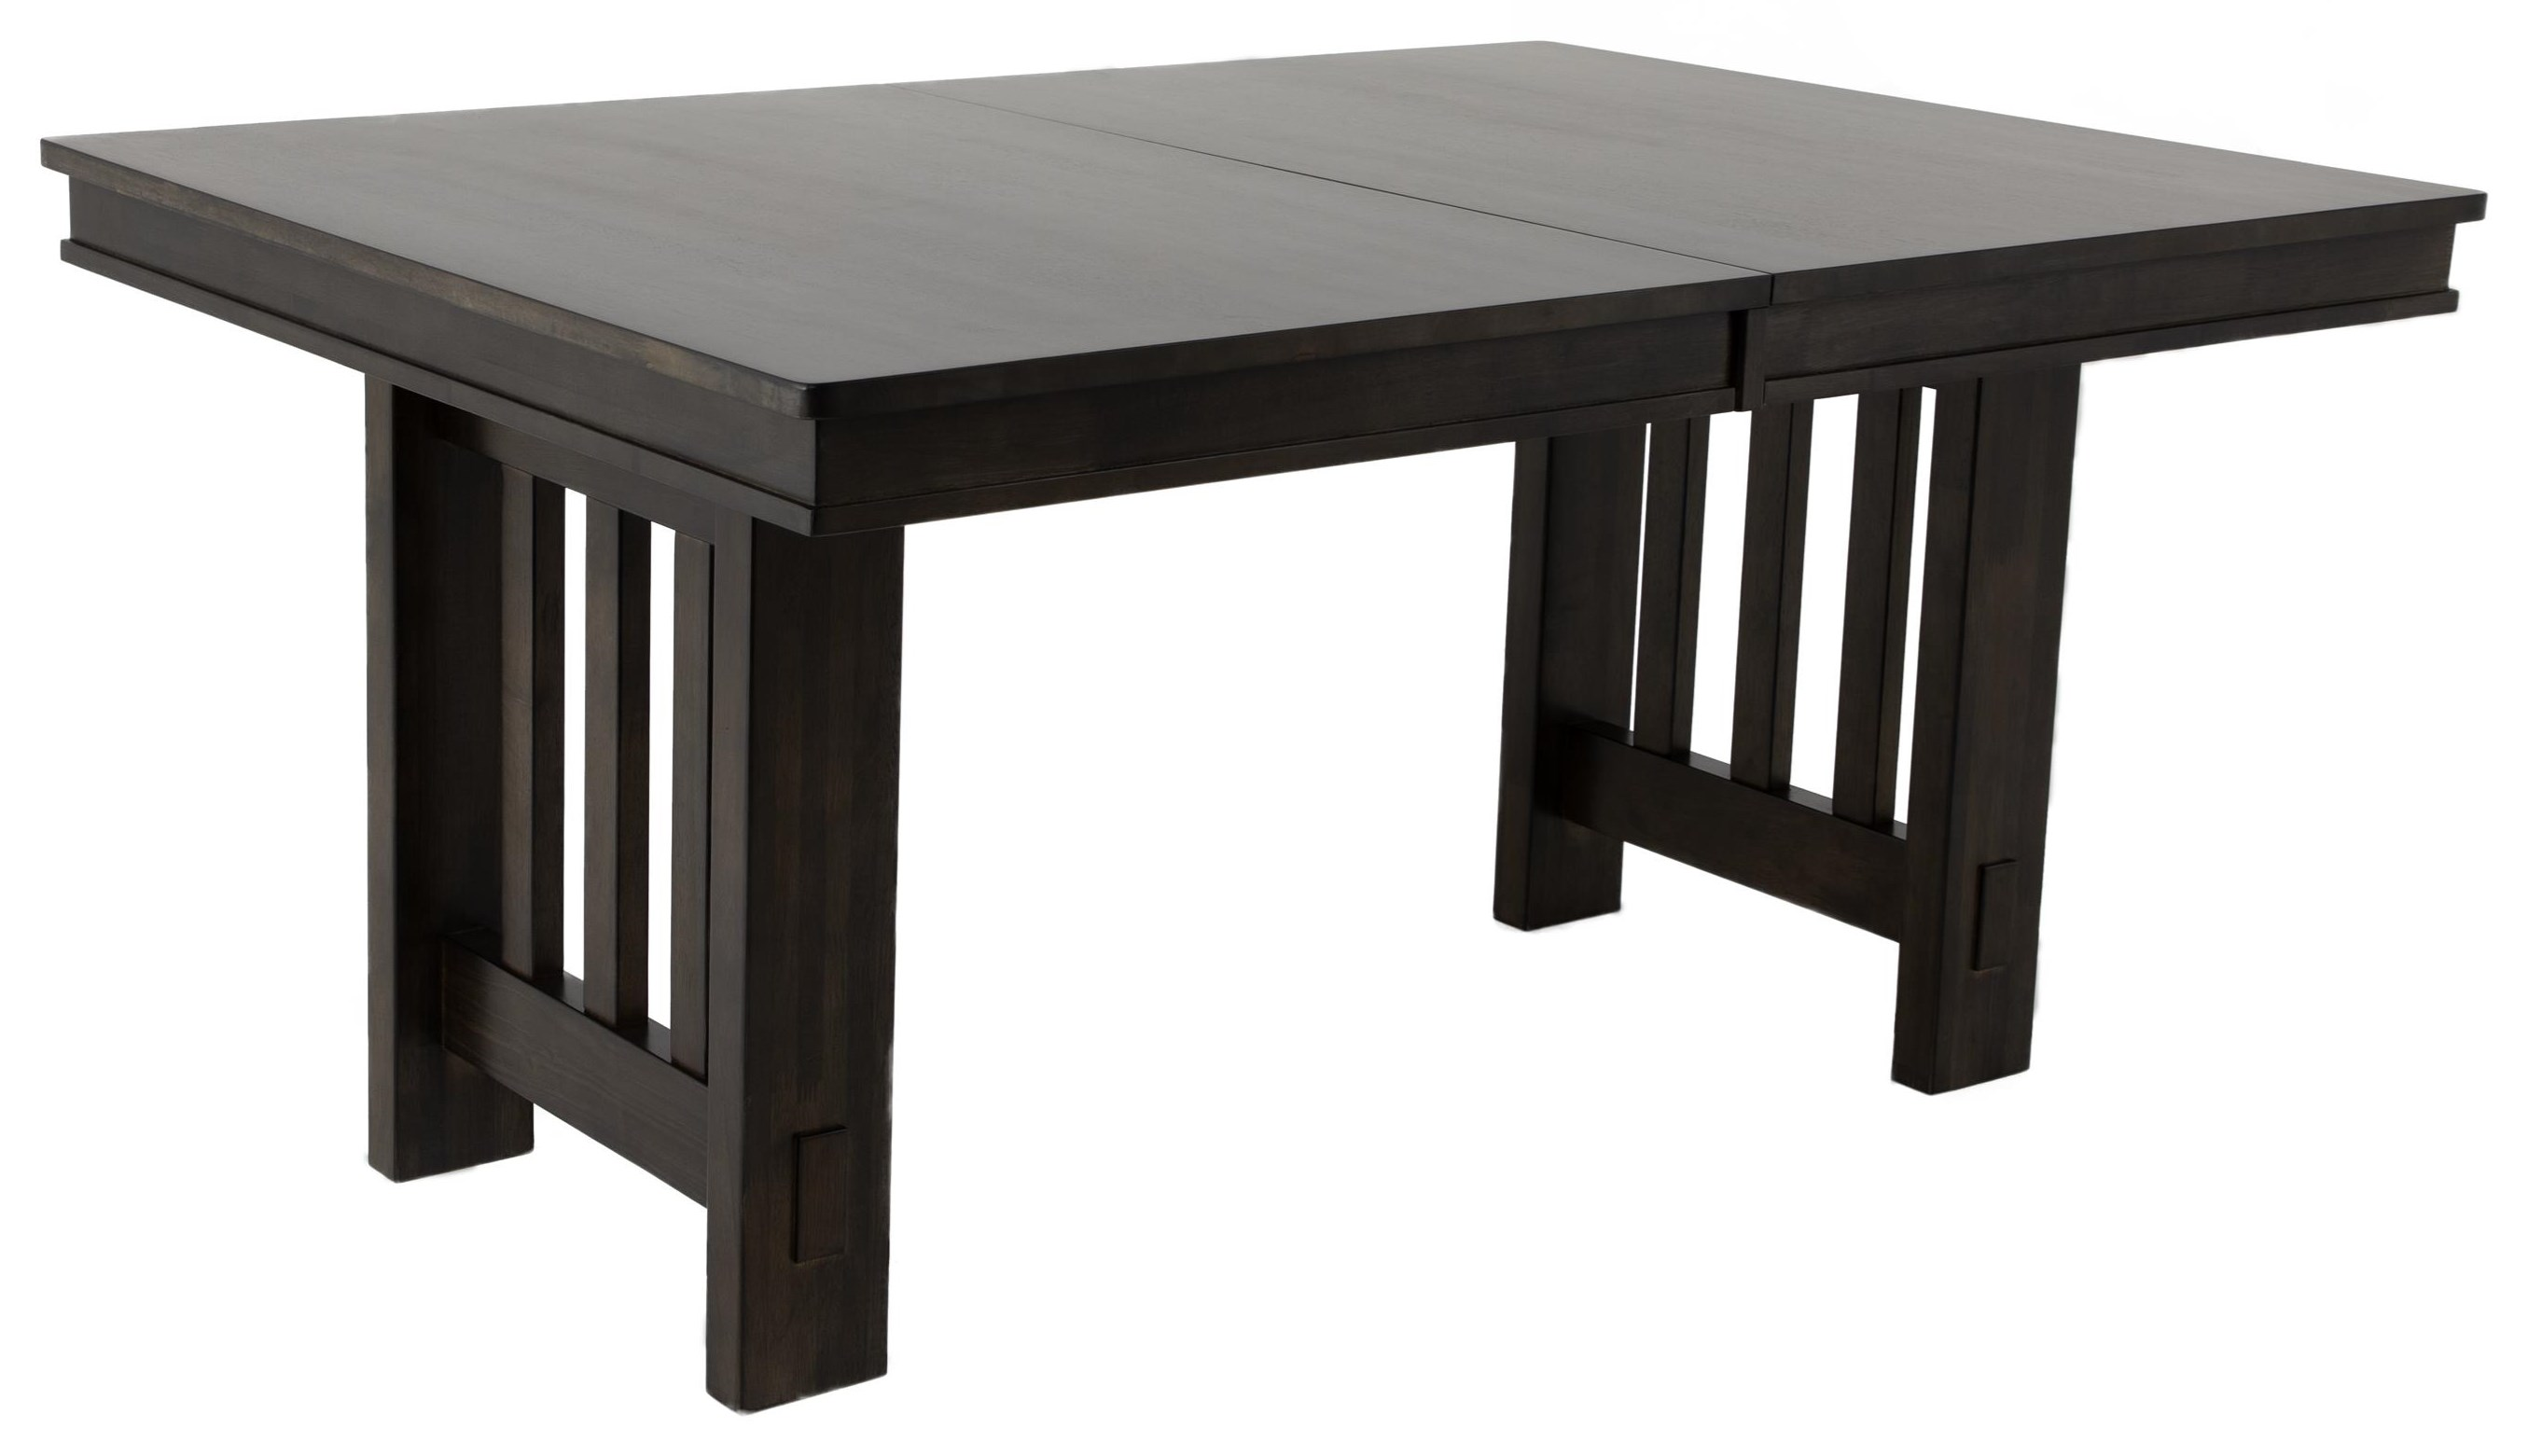 TRANSITIONAL TABLE